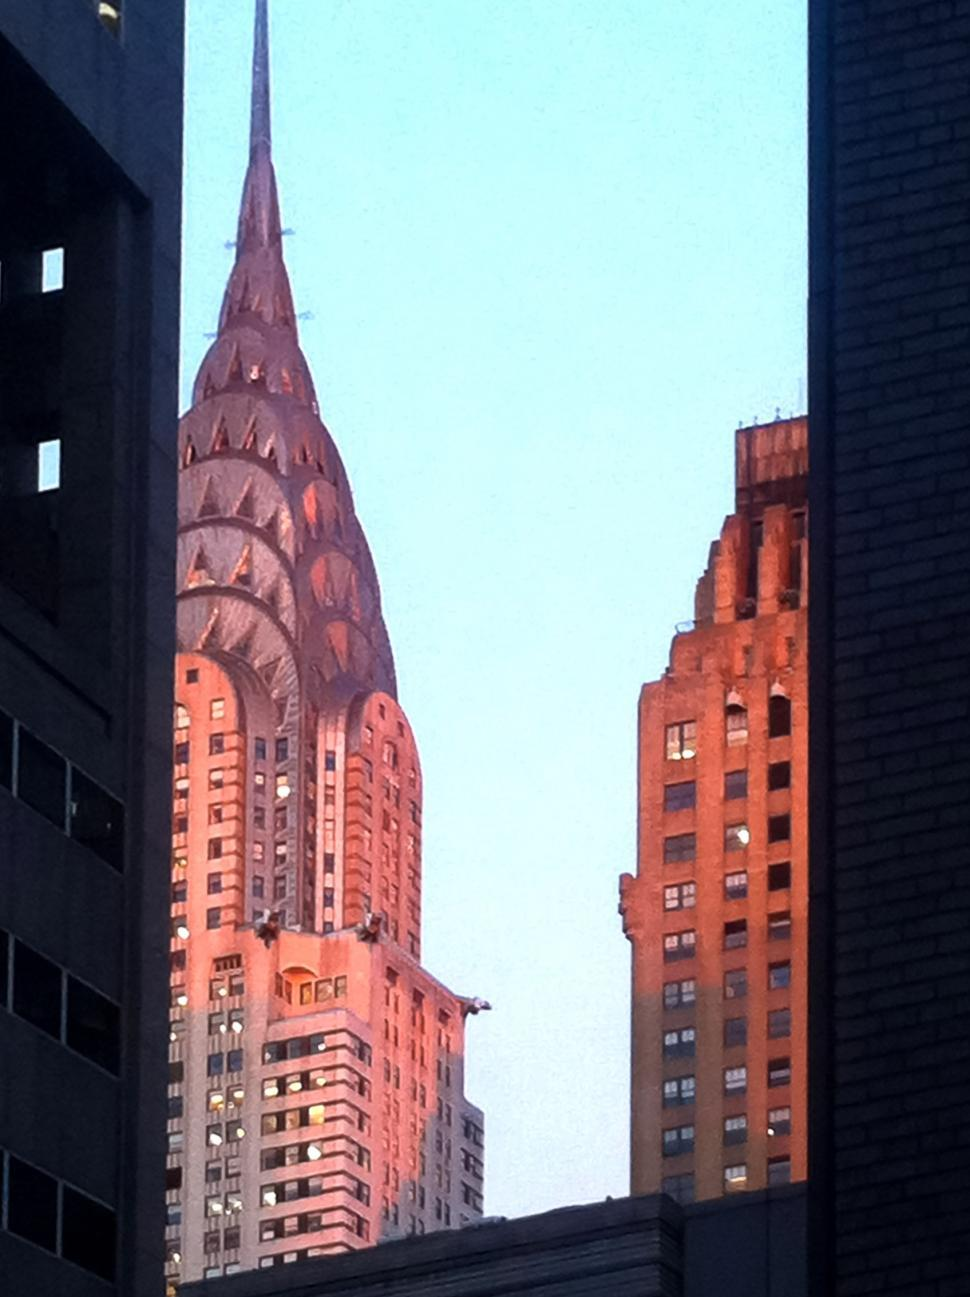 Download Free Stock HD Photo of Chrysler Building from shadows Online